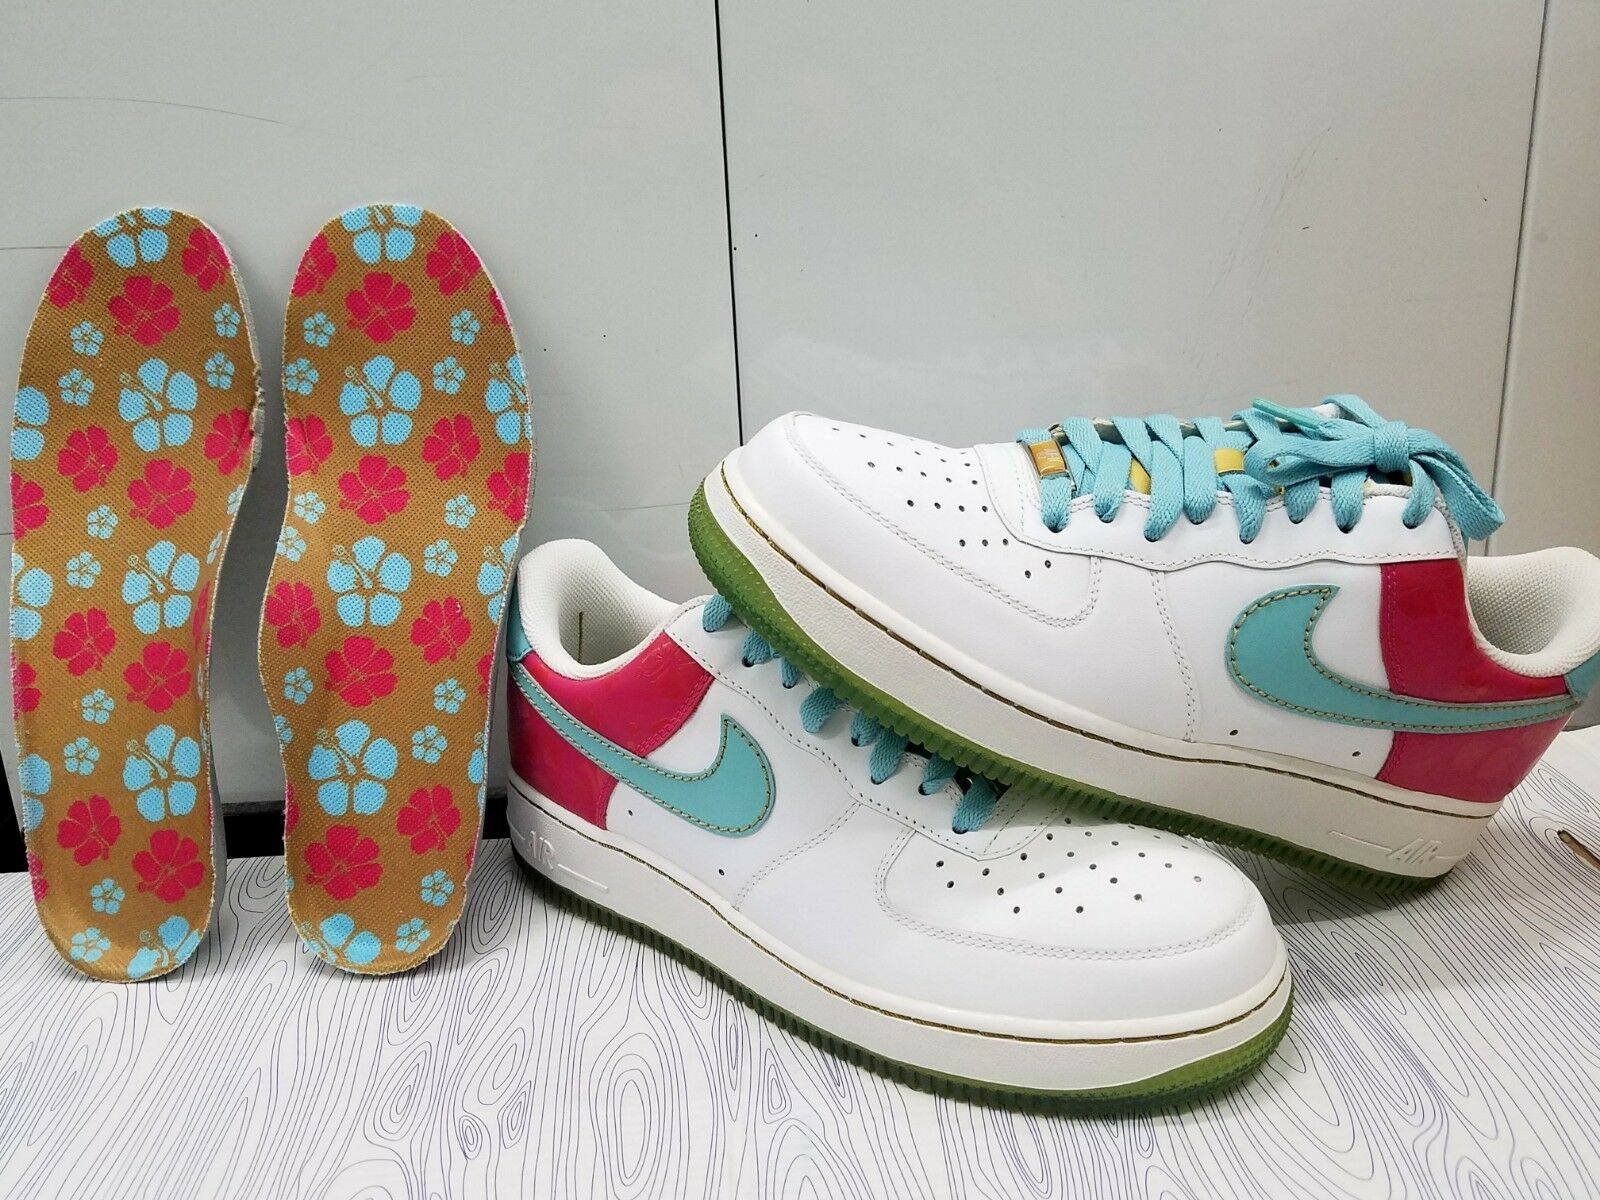 BRAND NEW NIKE AIR FORCE ONE HAWAII EDITION AQUA/WHITE/PINK MEN'S SZ 8.5 2018